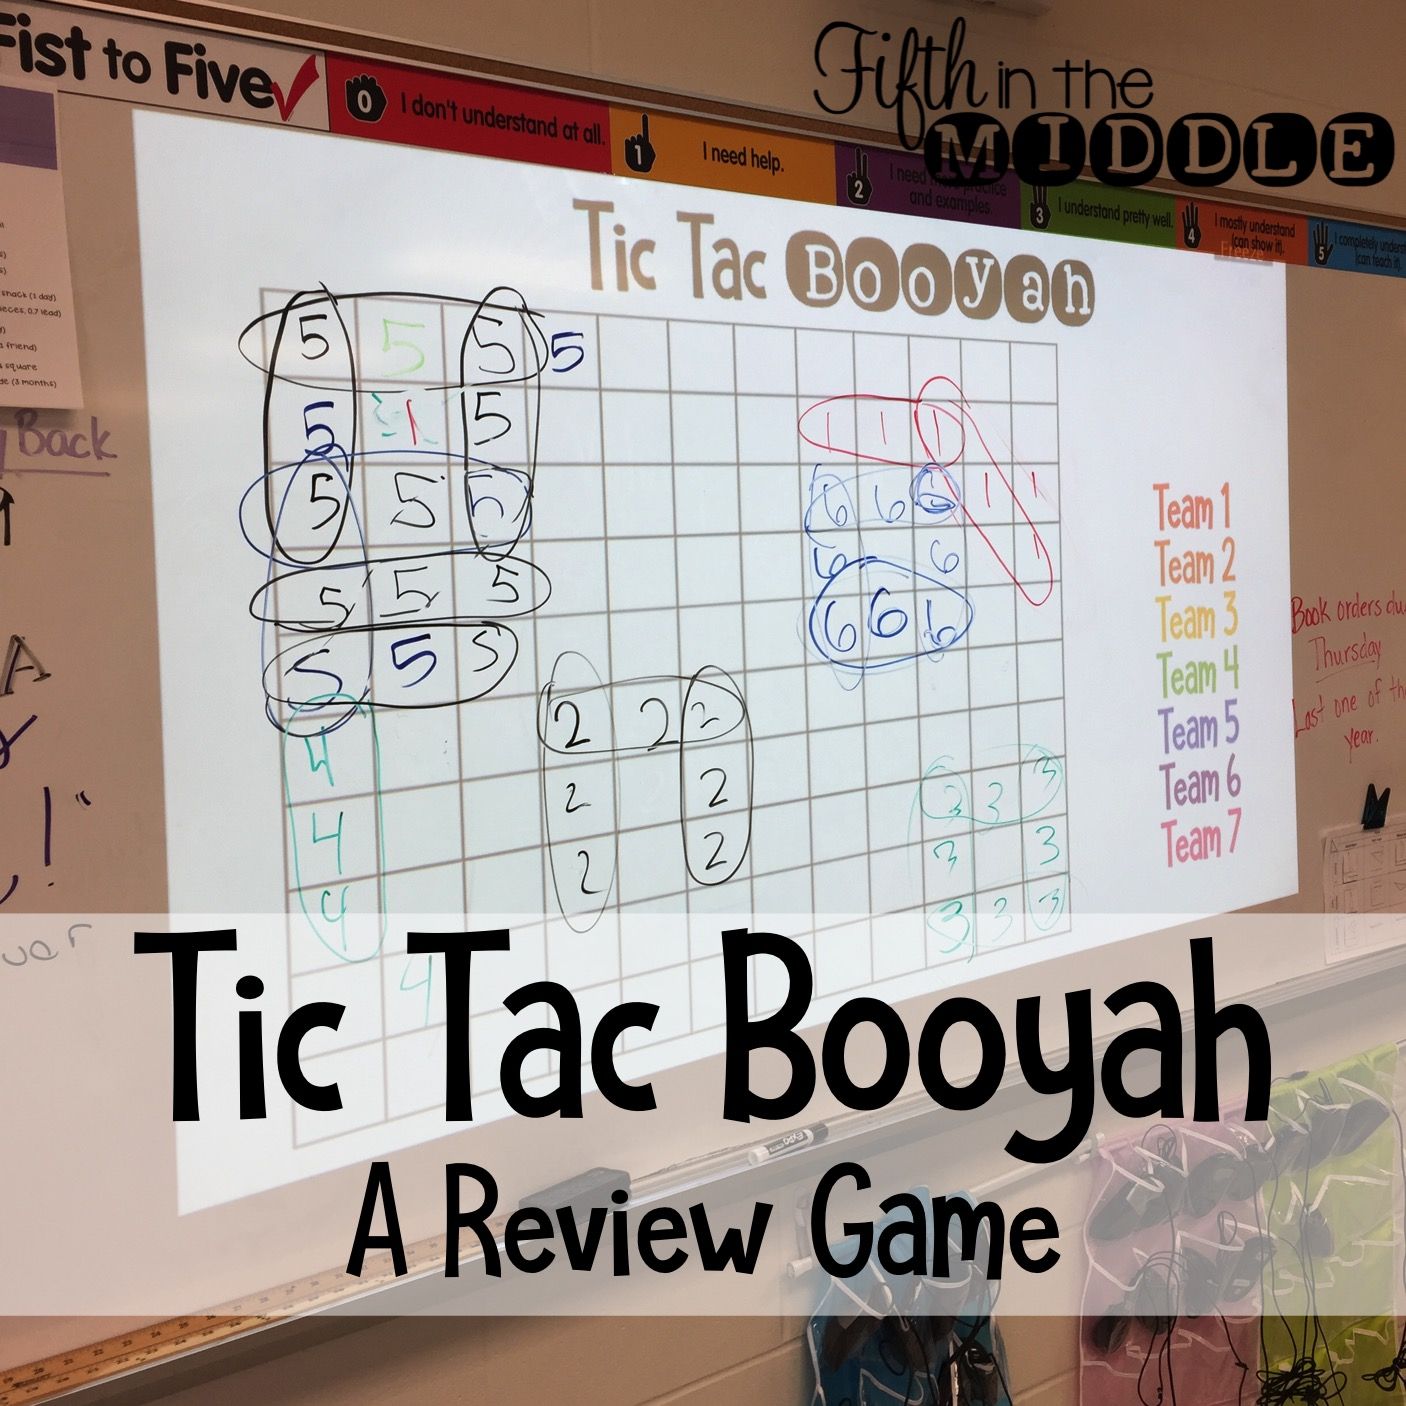 Tic Tac Booyah - Fifth in the Middle